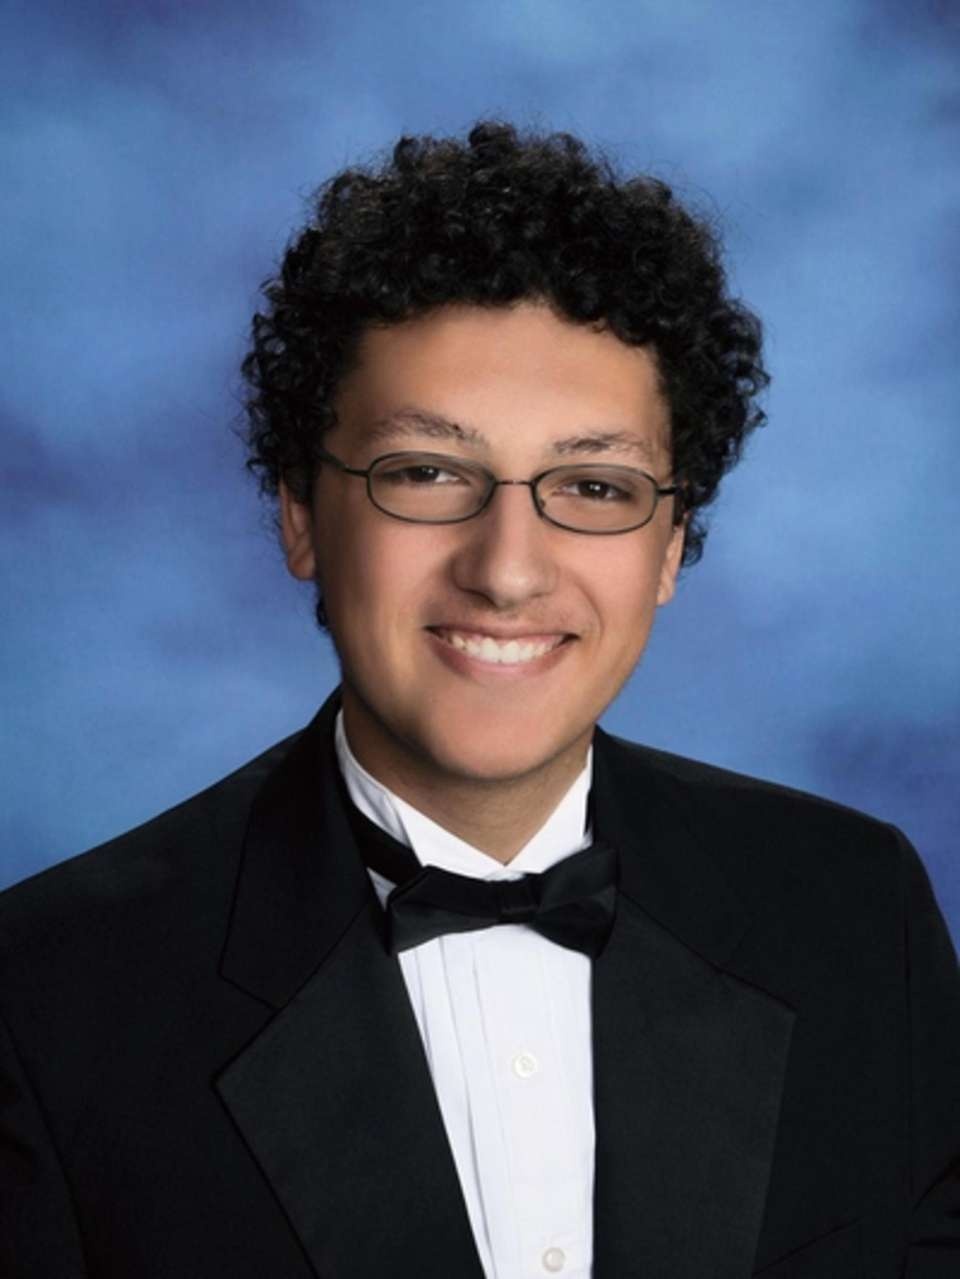 FREEPORT HIGH SCHOOL, JOSEPH LAROCCA Hometown: Freeport GPA: